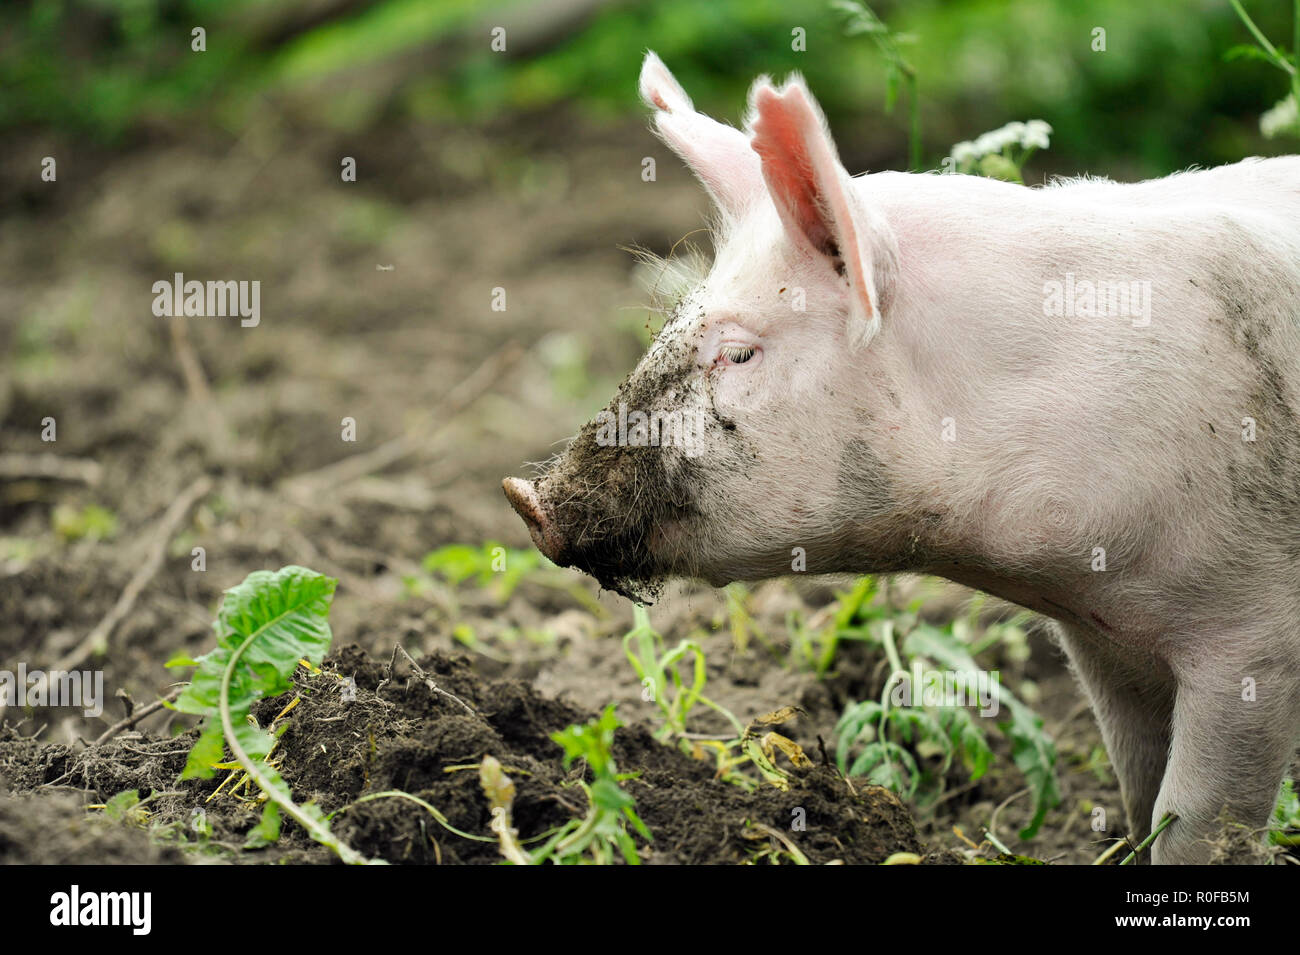 Young pig digging soil to eat grass roots - Stock Image